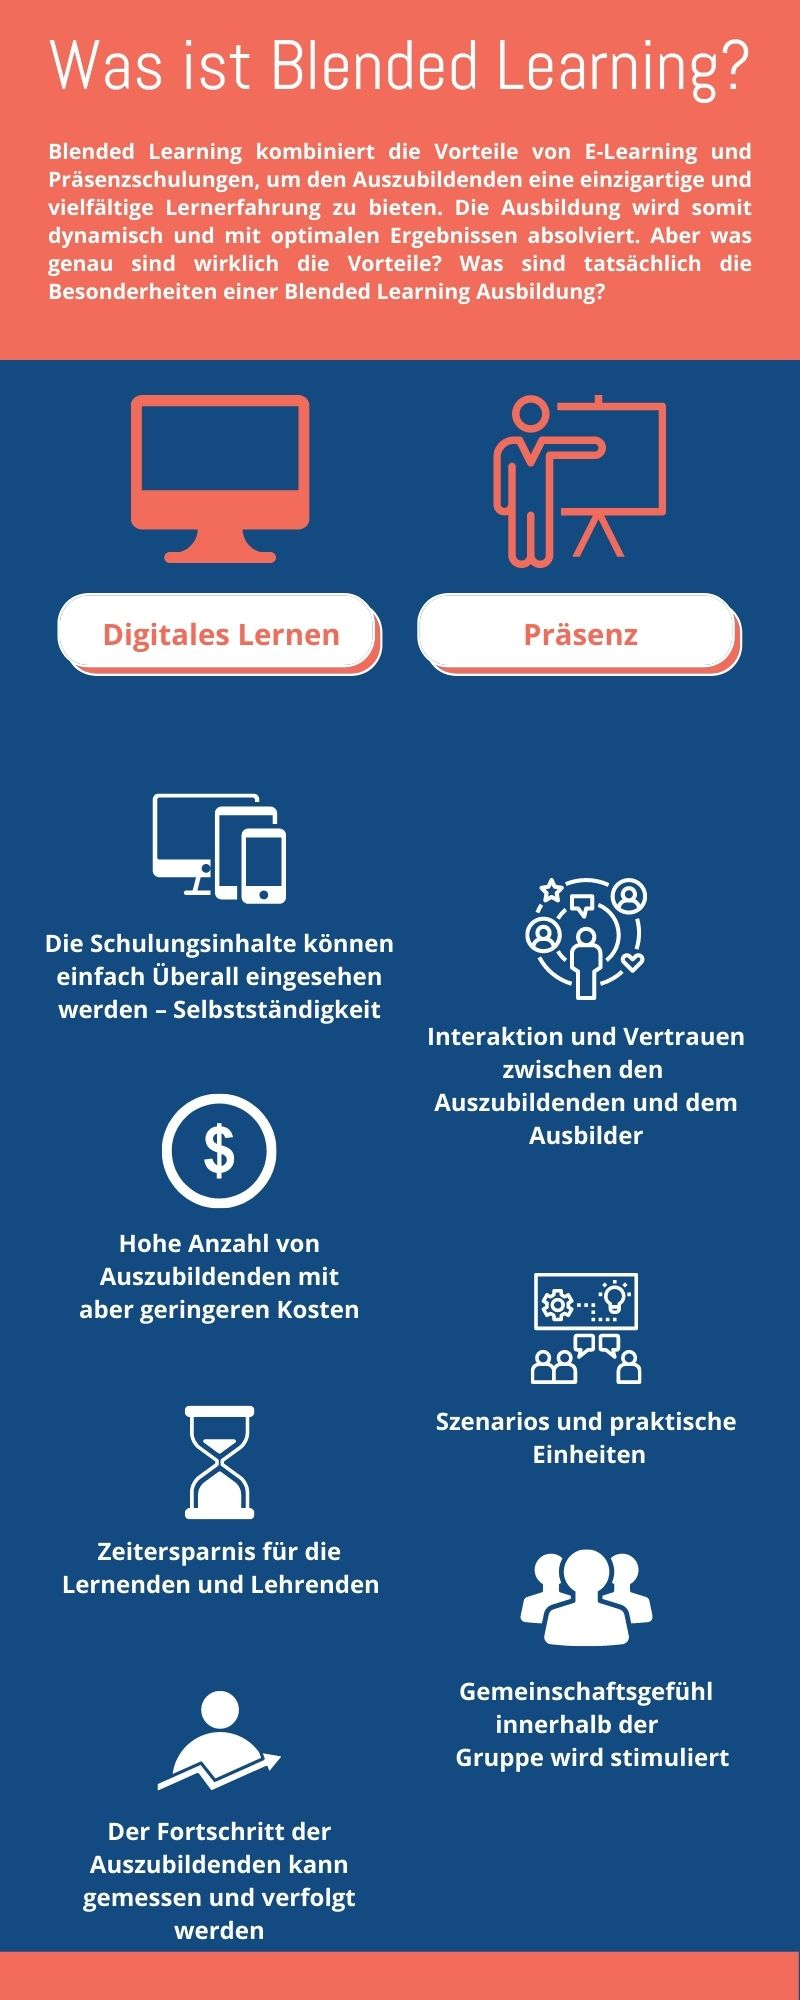 Was ist Blended Learning